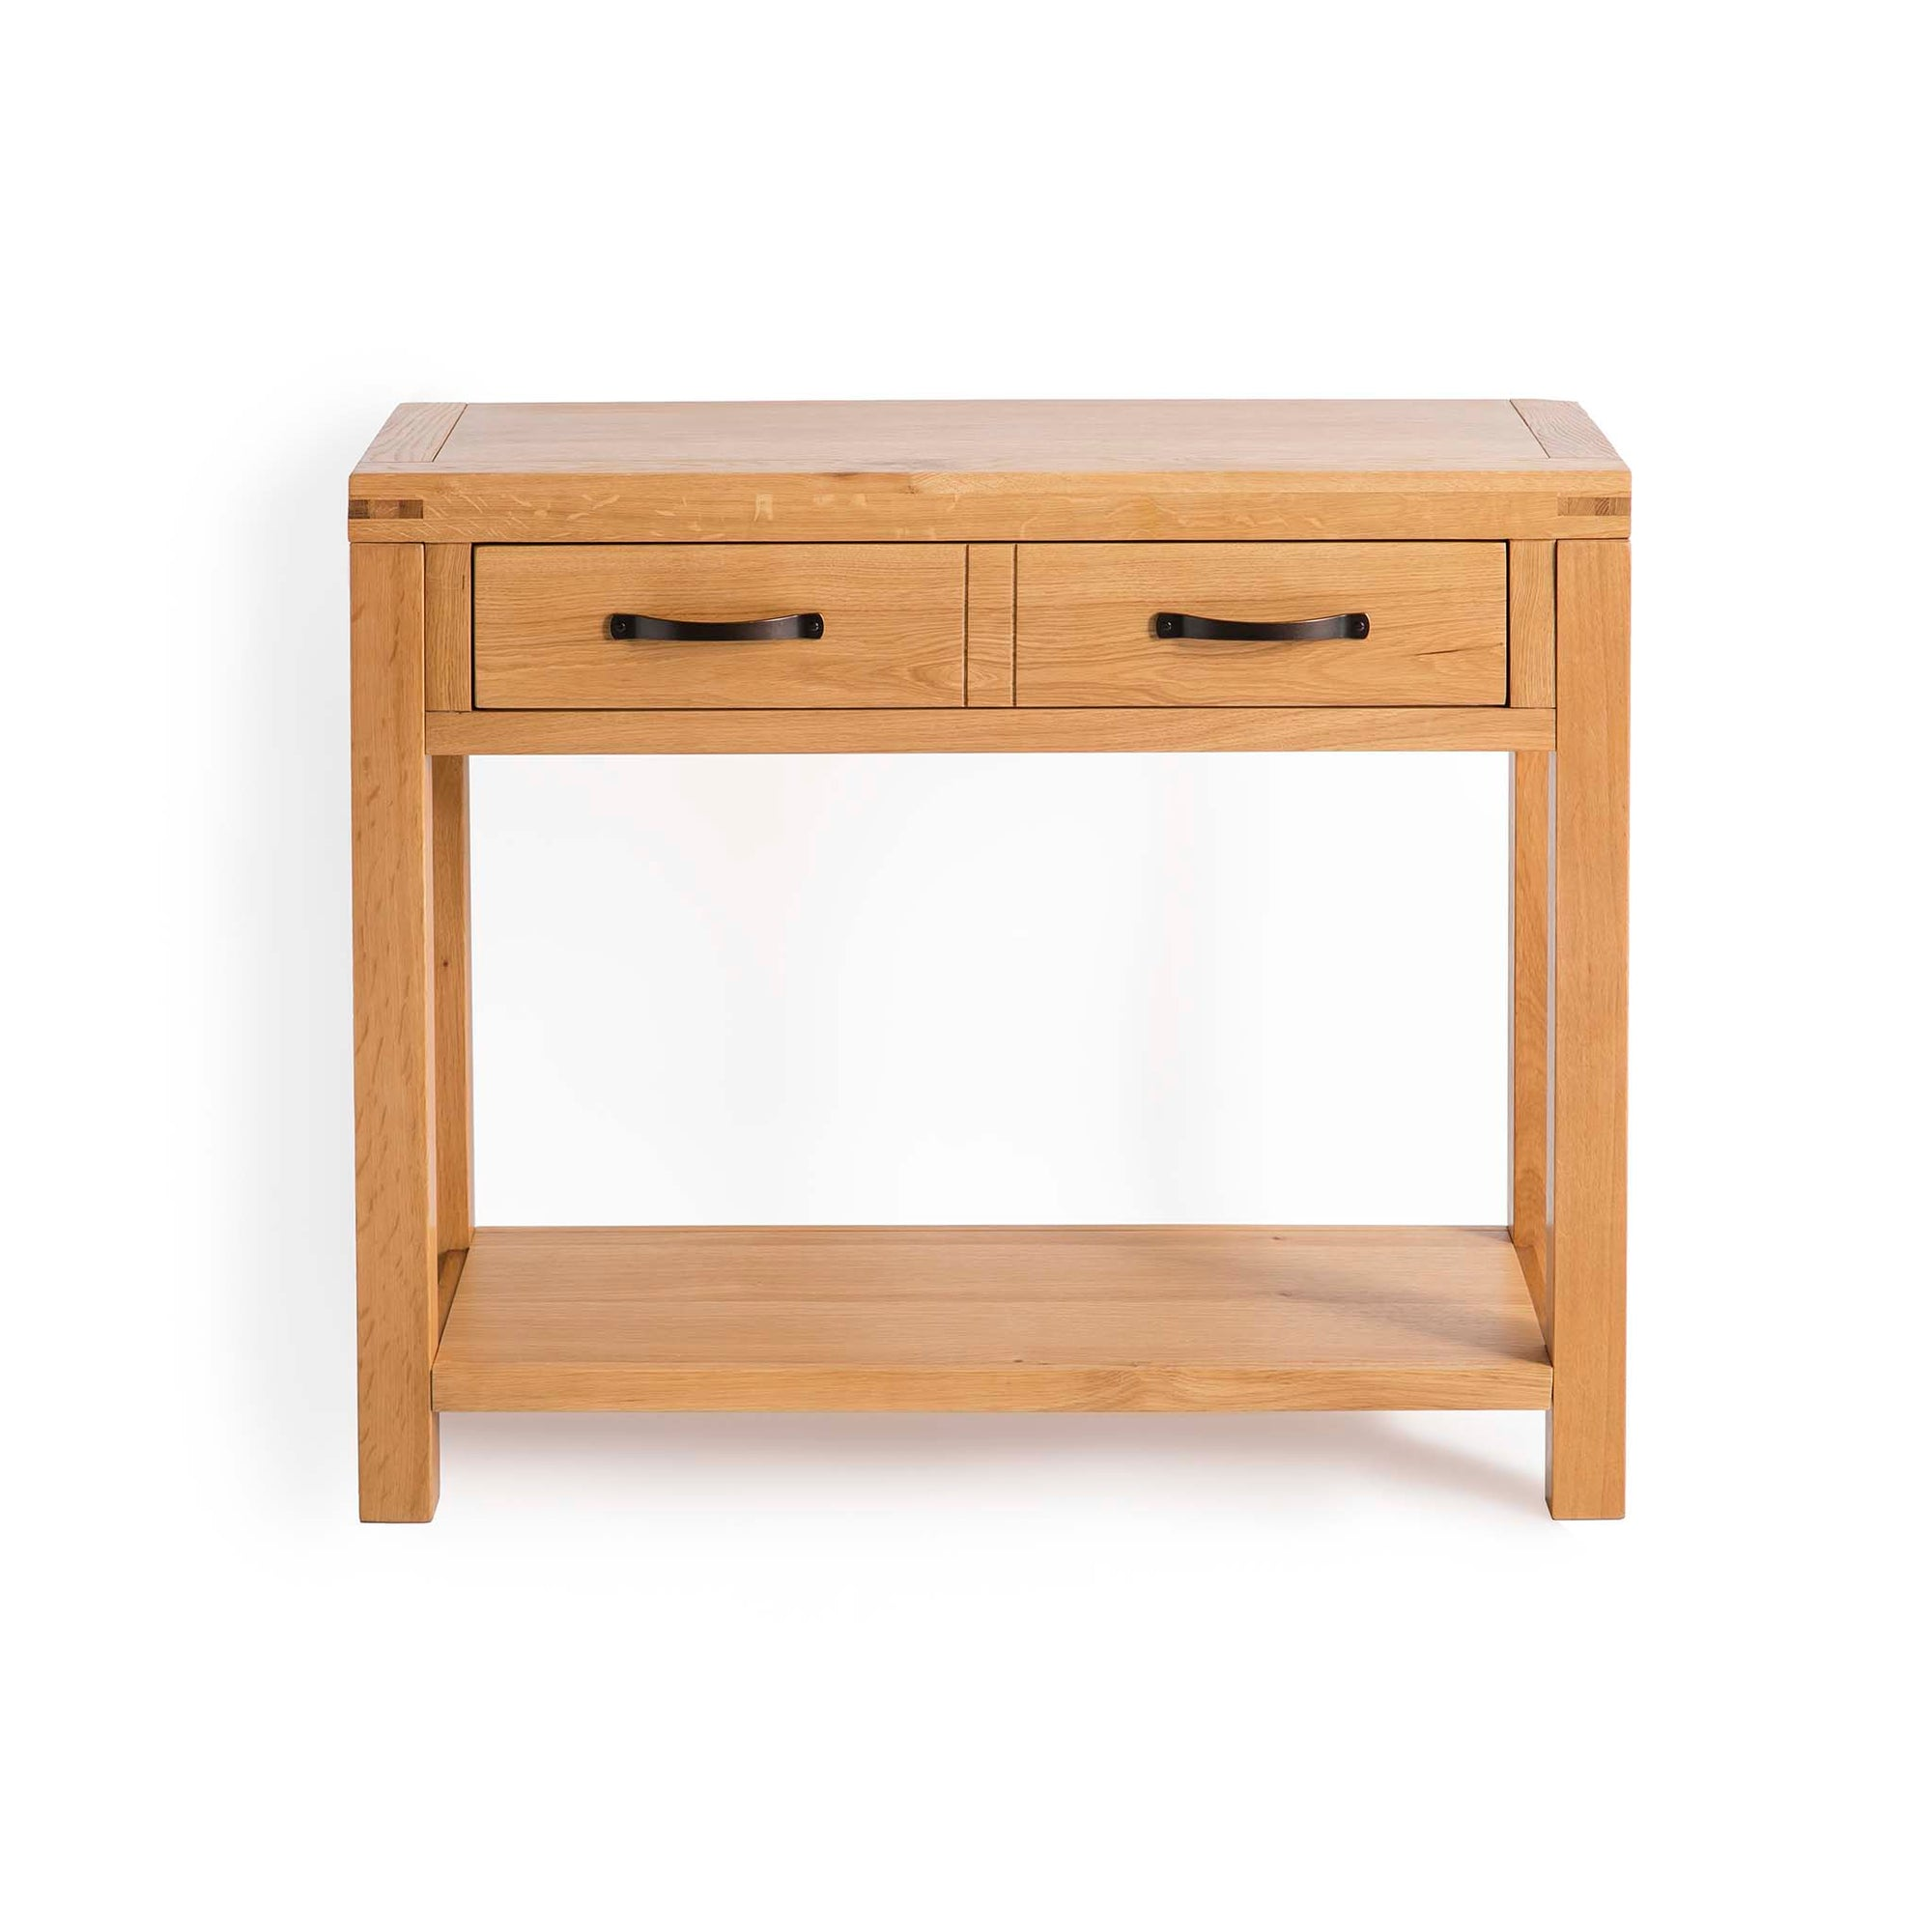 Abbey Waxed Oak Console Table with Drawer by Roseland Furniture